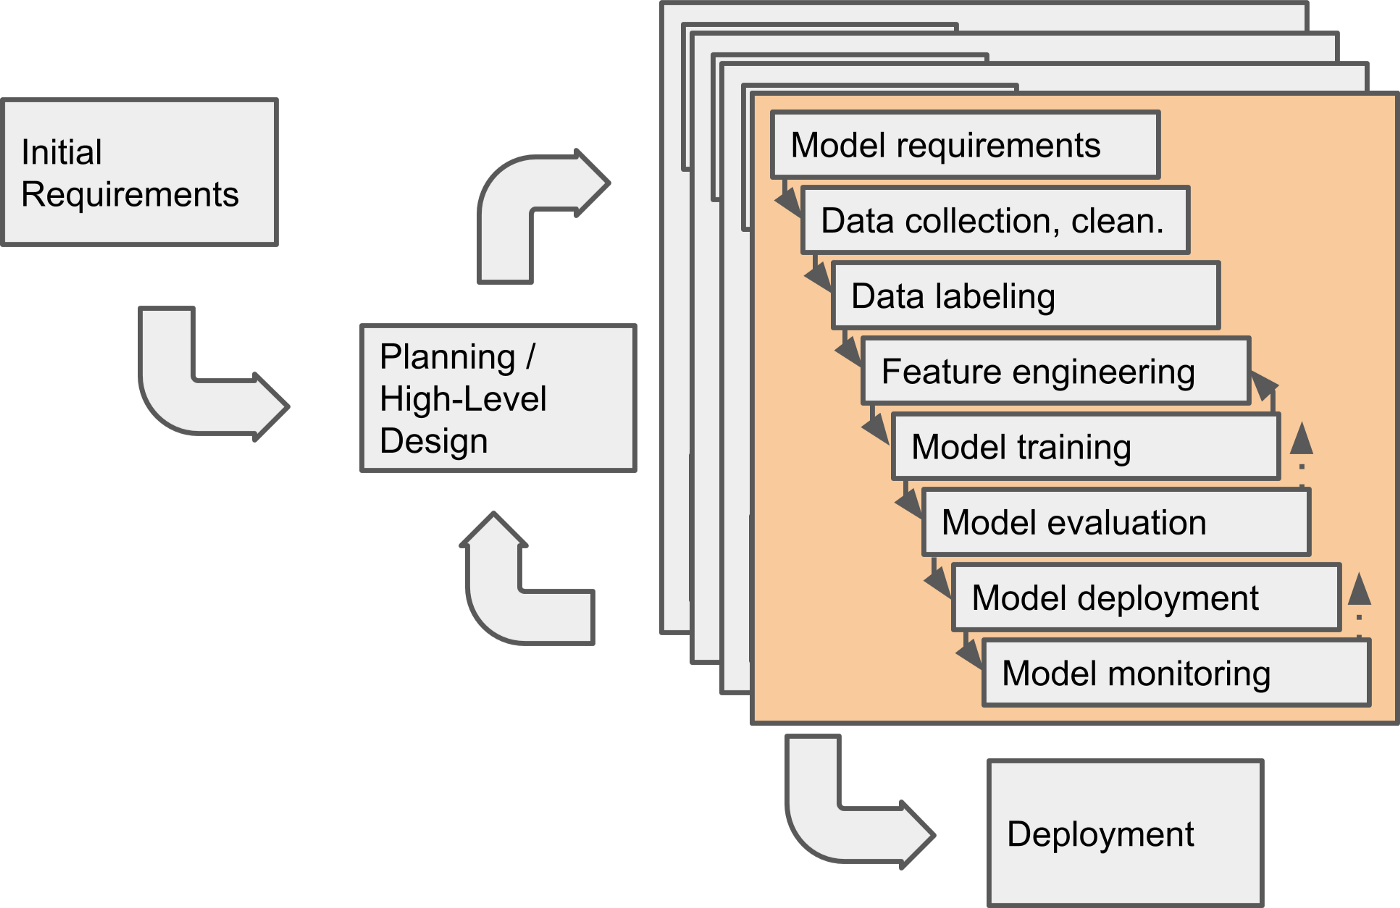 Revision of previous process model, integrating the machine learning workflow into the box of one component